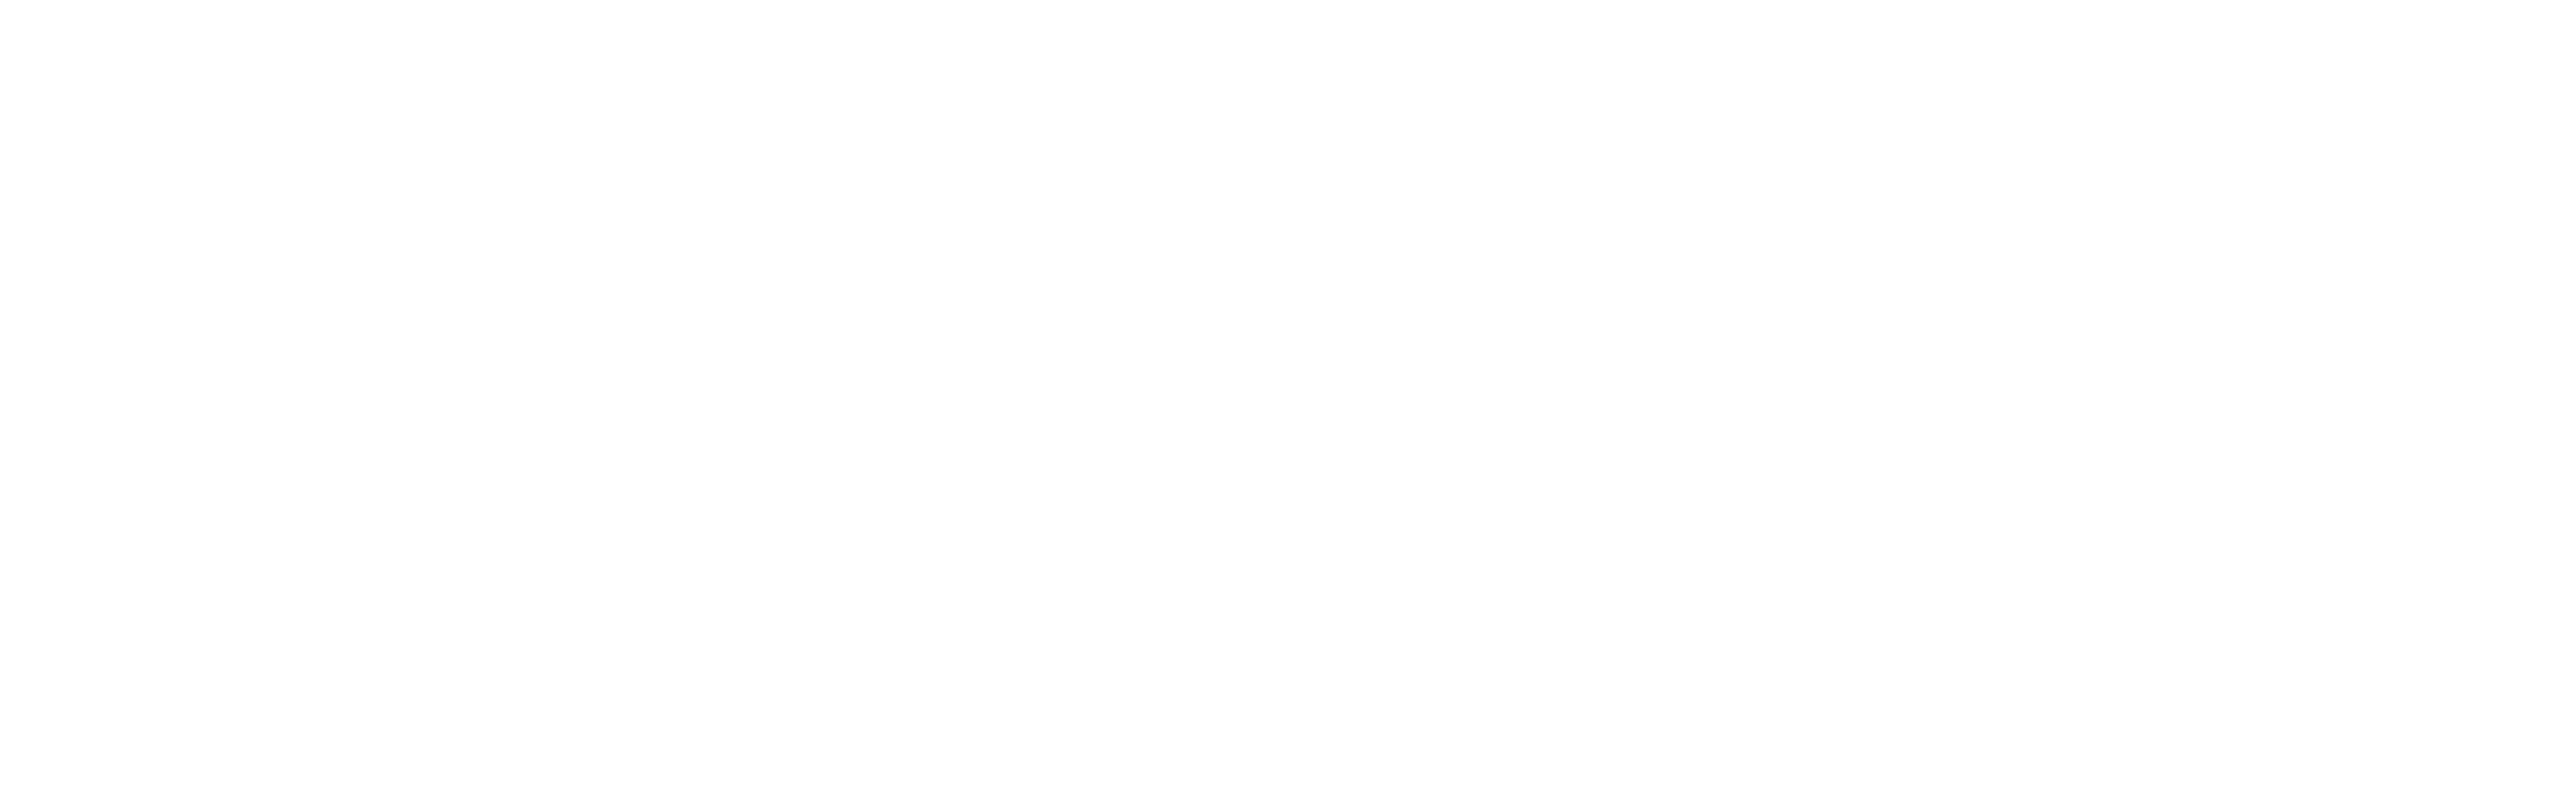 IEEE SERVICES 2020